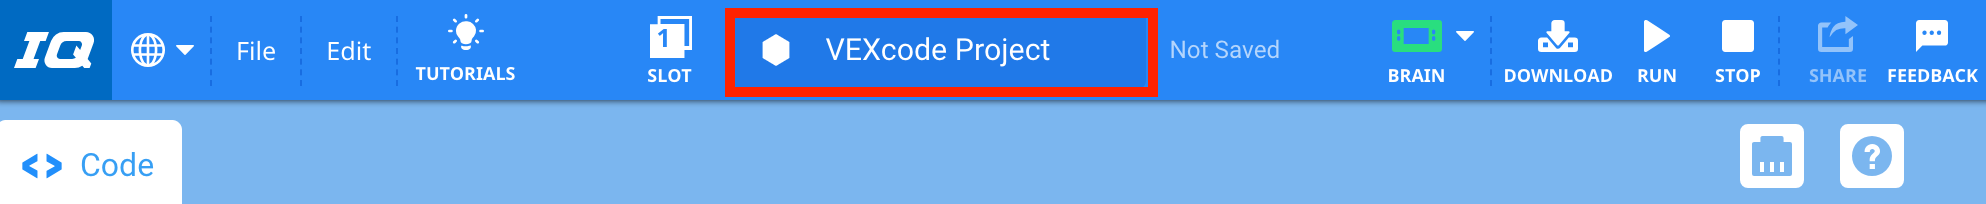 Project name Window